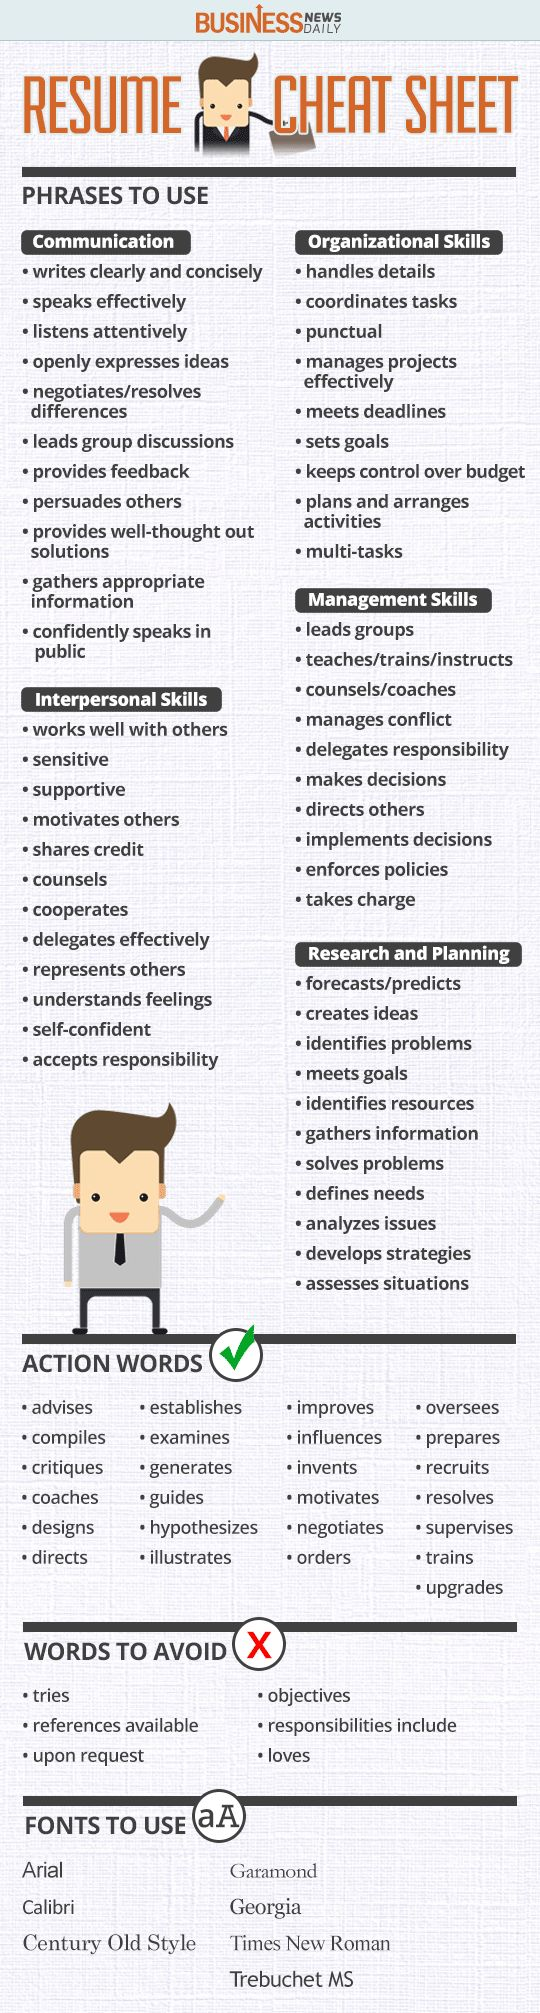 Opposenewapstandardsus  Terrific  Ideas About Resume On Pinterest  Cv Format Resume Cv And  With Lovely Resume Cheat Sheet Infographic Andrews Almost Done With A Complete Unit On Employment Which With Awesome Resume Financial Analyst Also Guest Service Agent Resume In Addition How To Make An Amazing Resume And Courier Resume As Well As Resume For Sales Rep Additionally High School Resume For College Template From Pinterestcom With Opposenewapstandardsus  Lovely  Ideas About Resume On Pinterest  Cv Format Resume Cv And  With Awesome Resume Cheat Sheet Infographic Andrews Almost Done With A Complete Unit On Employment Which And Terrific Resume Financial Analyst Also Guest Service Agent Resume In Addition How To Make An Amazing Resume From Pinterestcom